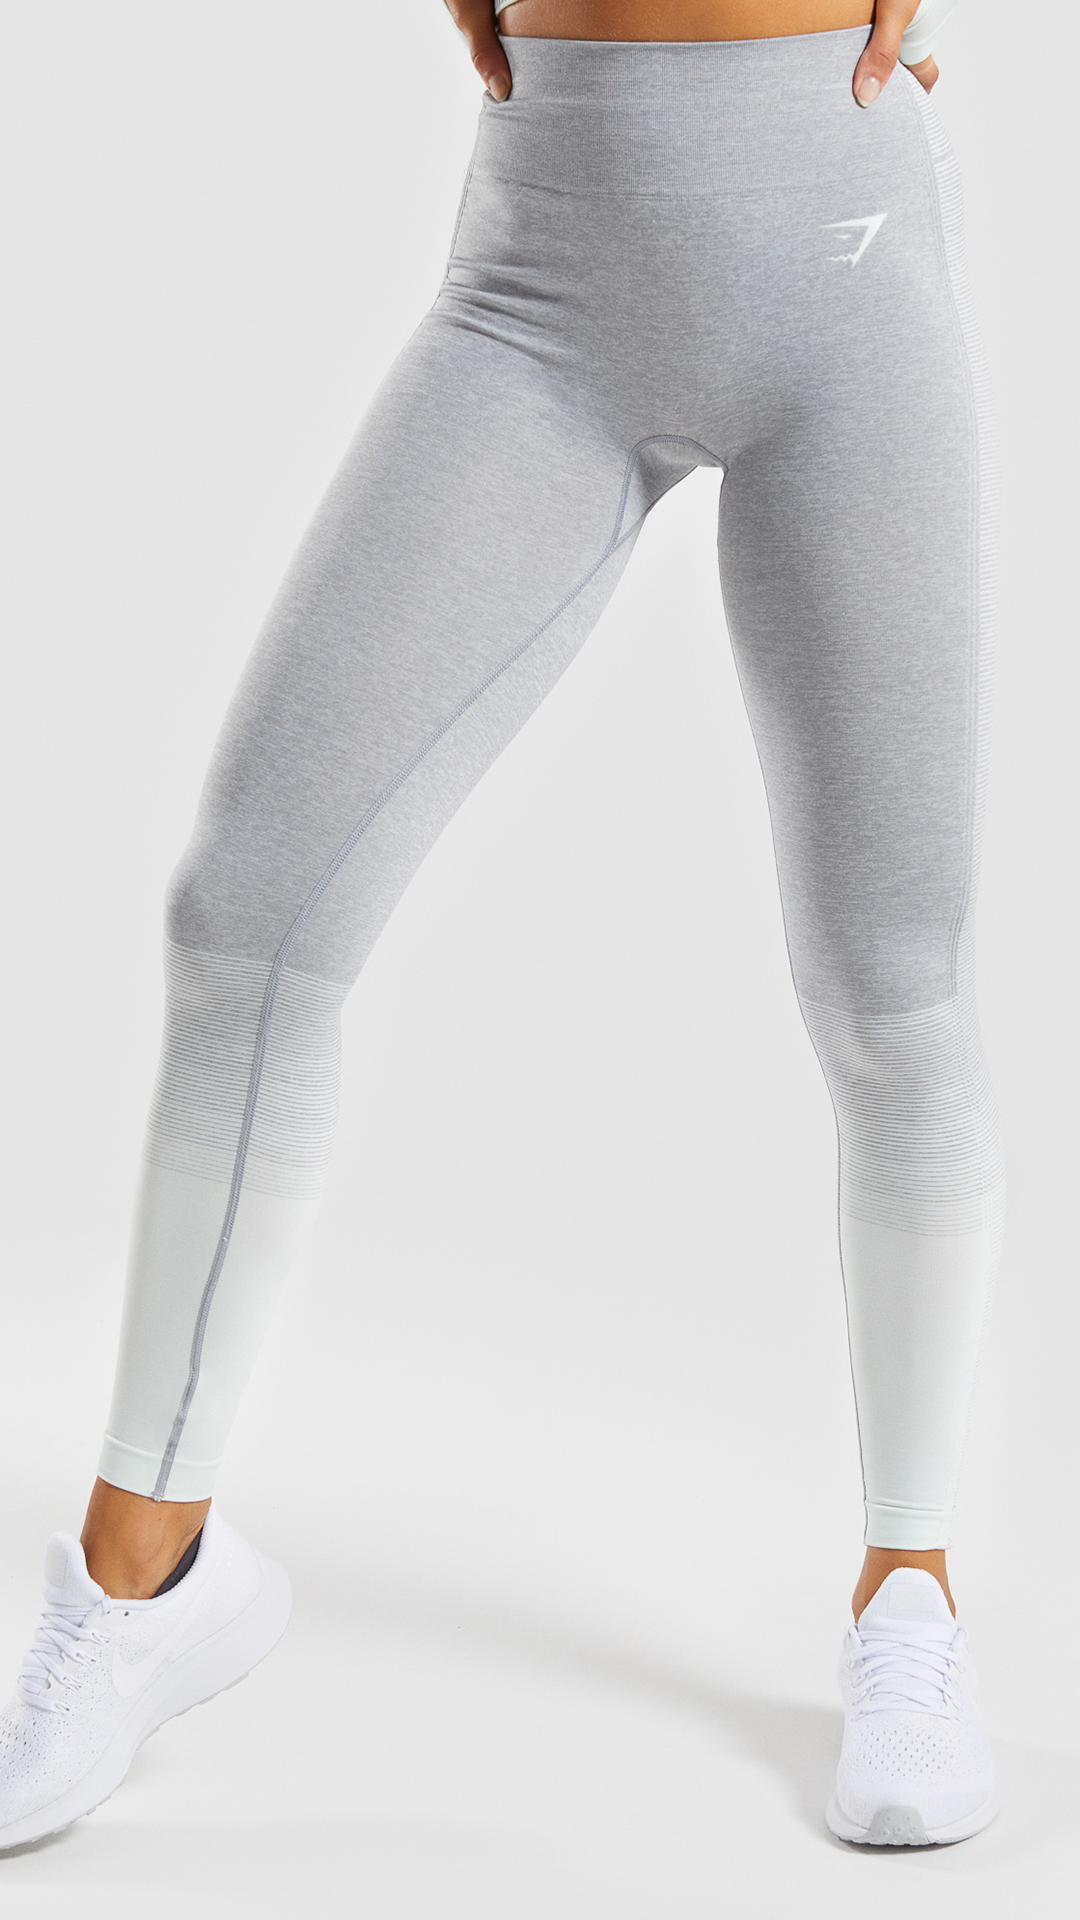 54cc289cb4f7d The Amplify Seamless Leggings, Light Grey Marl/ Seafoam Green.Accent your  shape. Amplify your style. #Gymshark #Womens #Fitness #Workout #Comfy